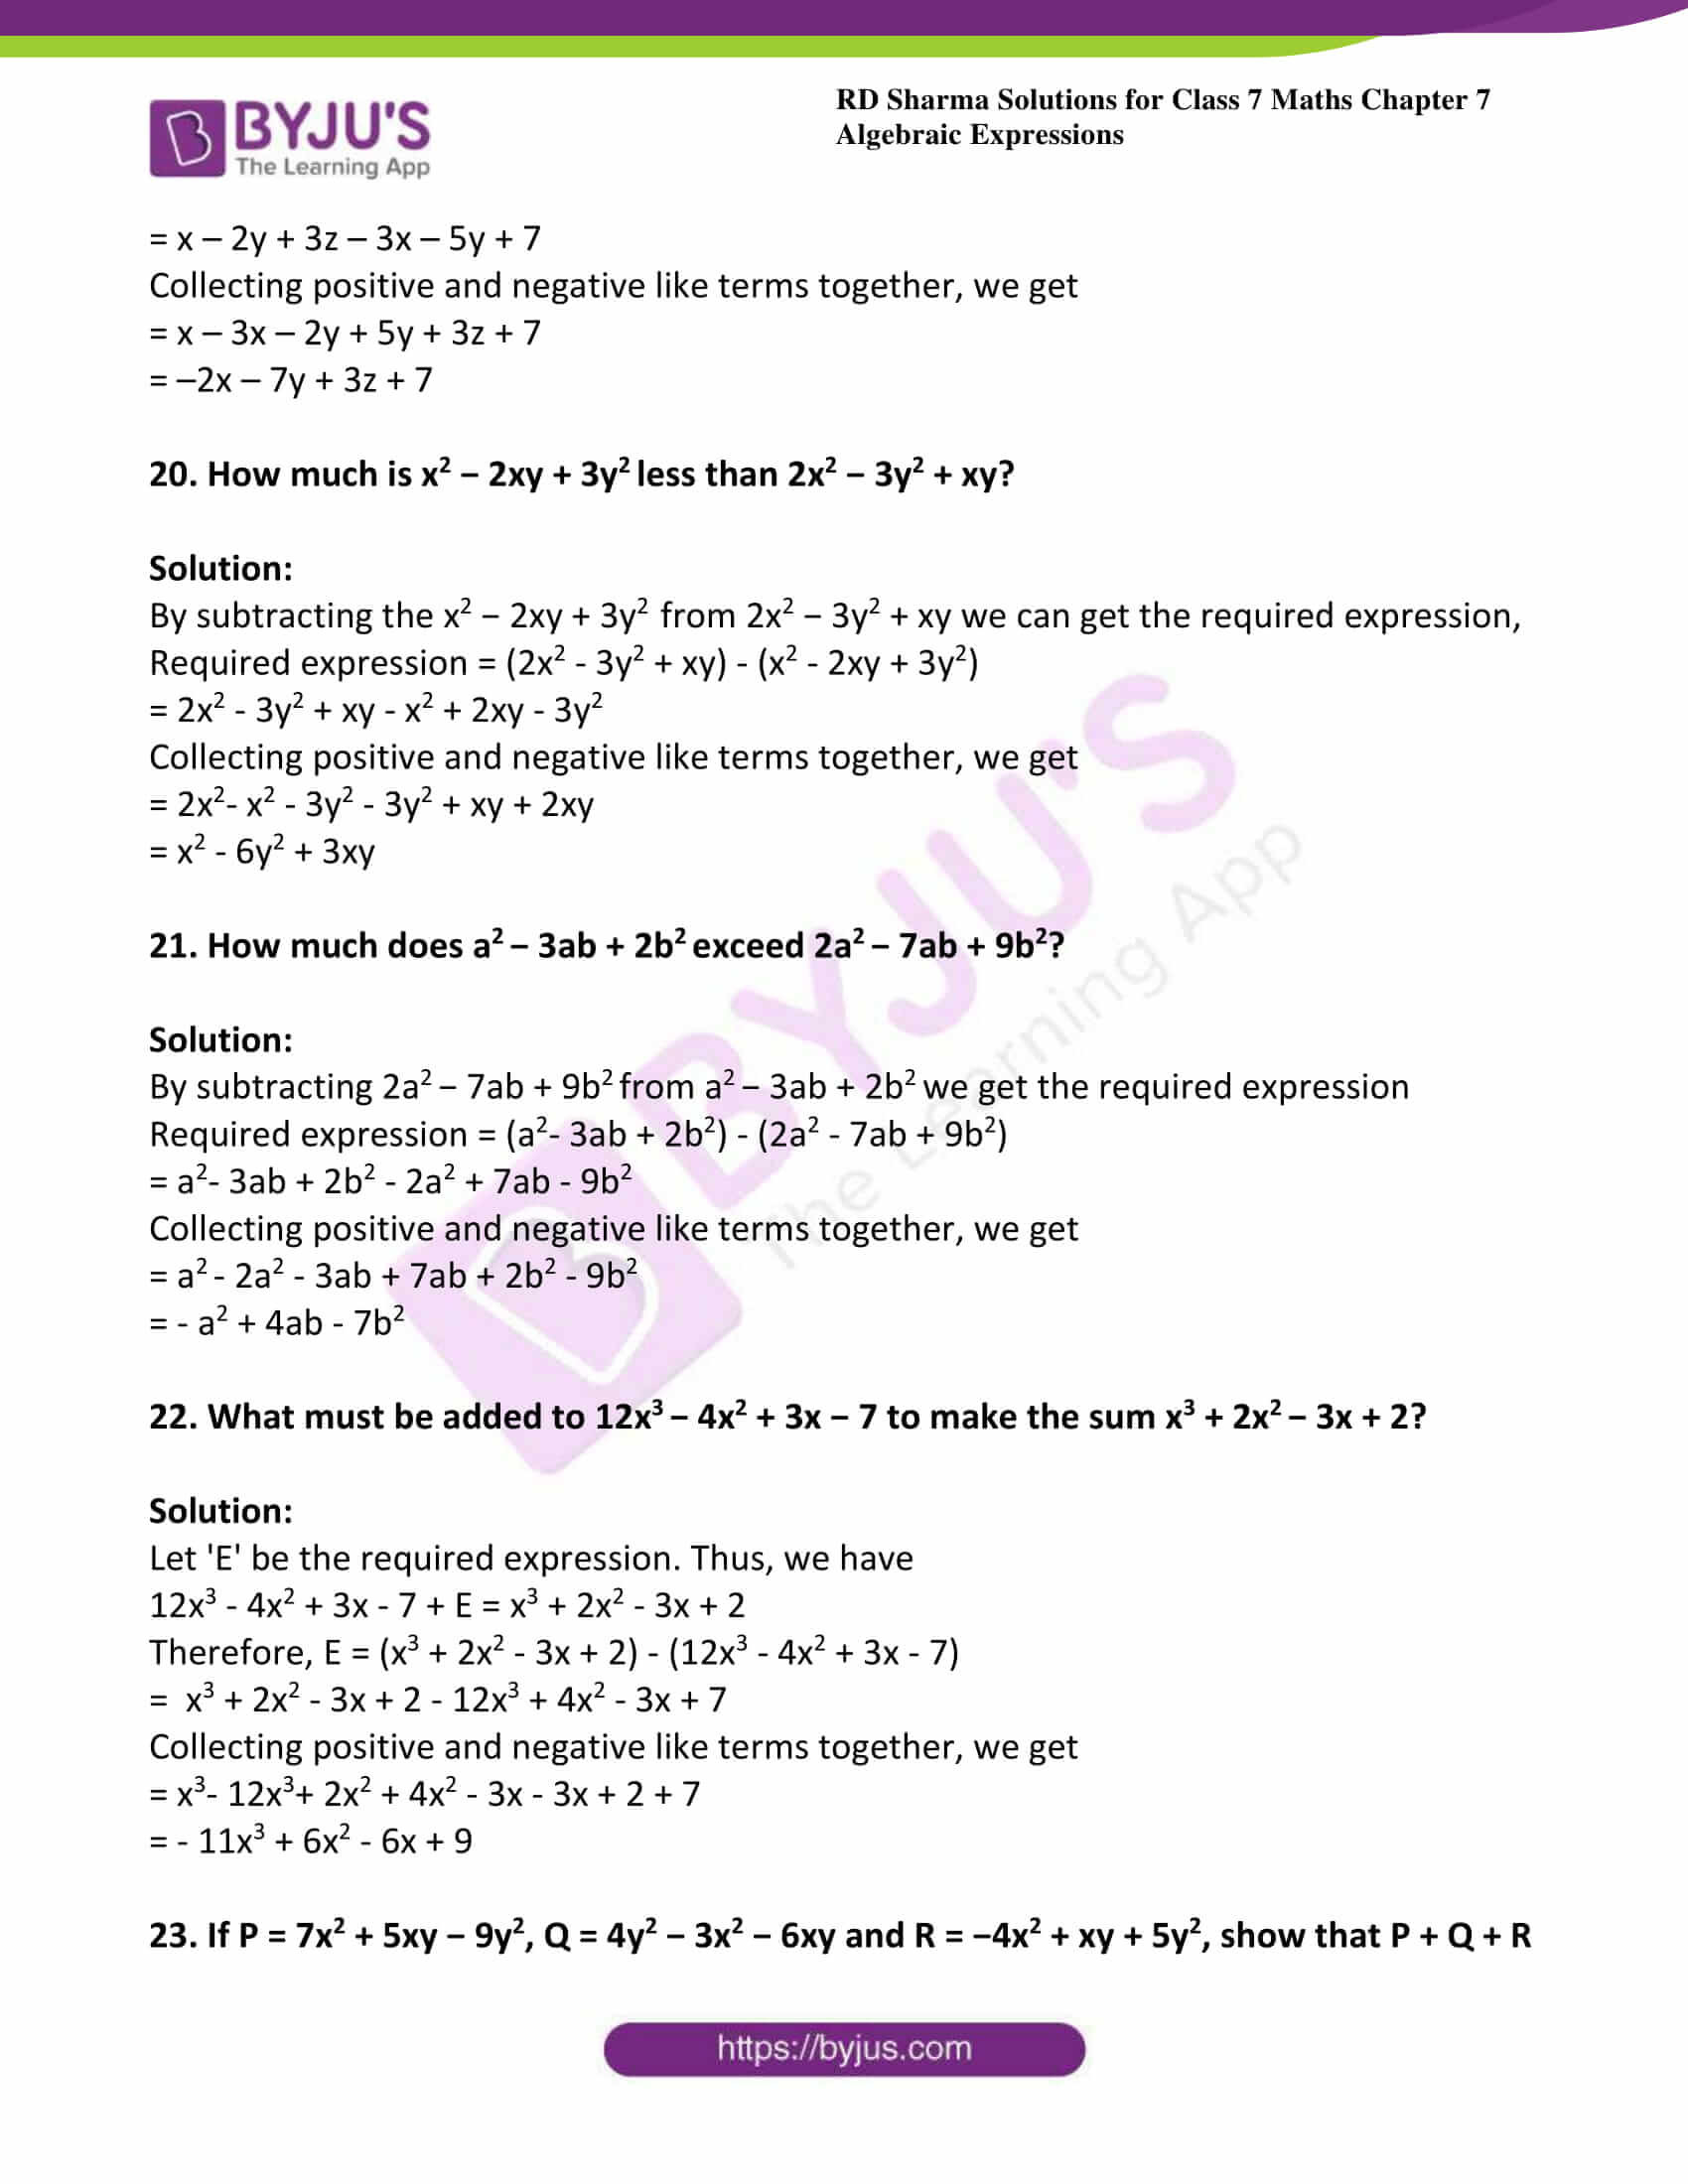 Numerical Expressions Worksheets 6th Grade Rd Sharma solutions for Class 7 Maths Chapter 7 Algebraic